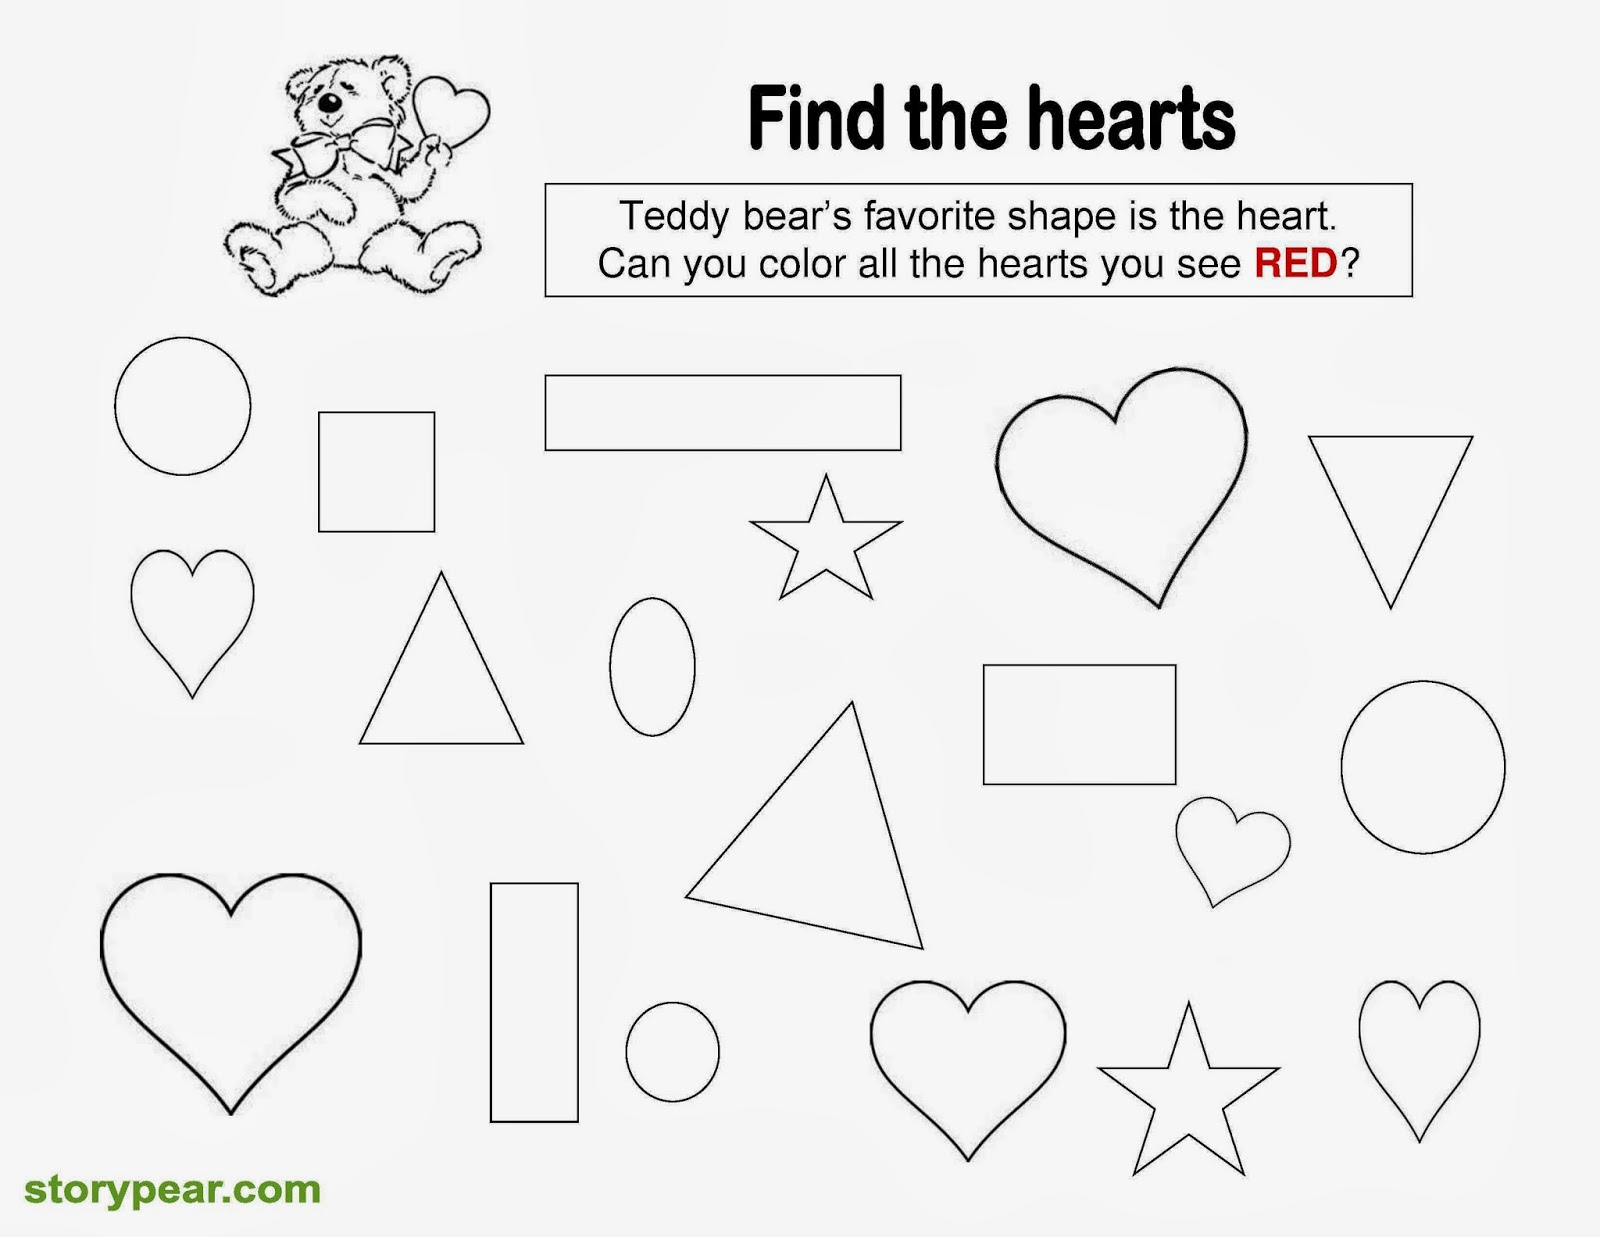 Story Pear Free Valentine Day 39 s Printable Sheets for